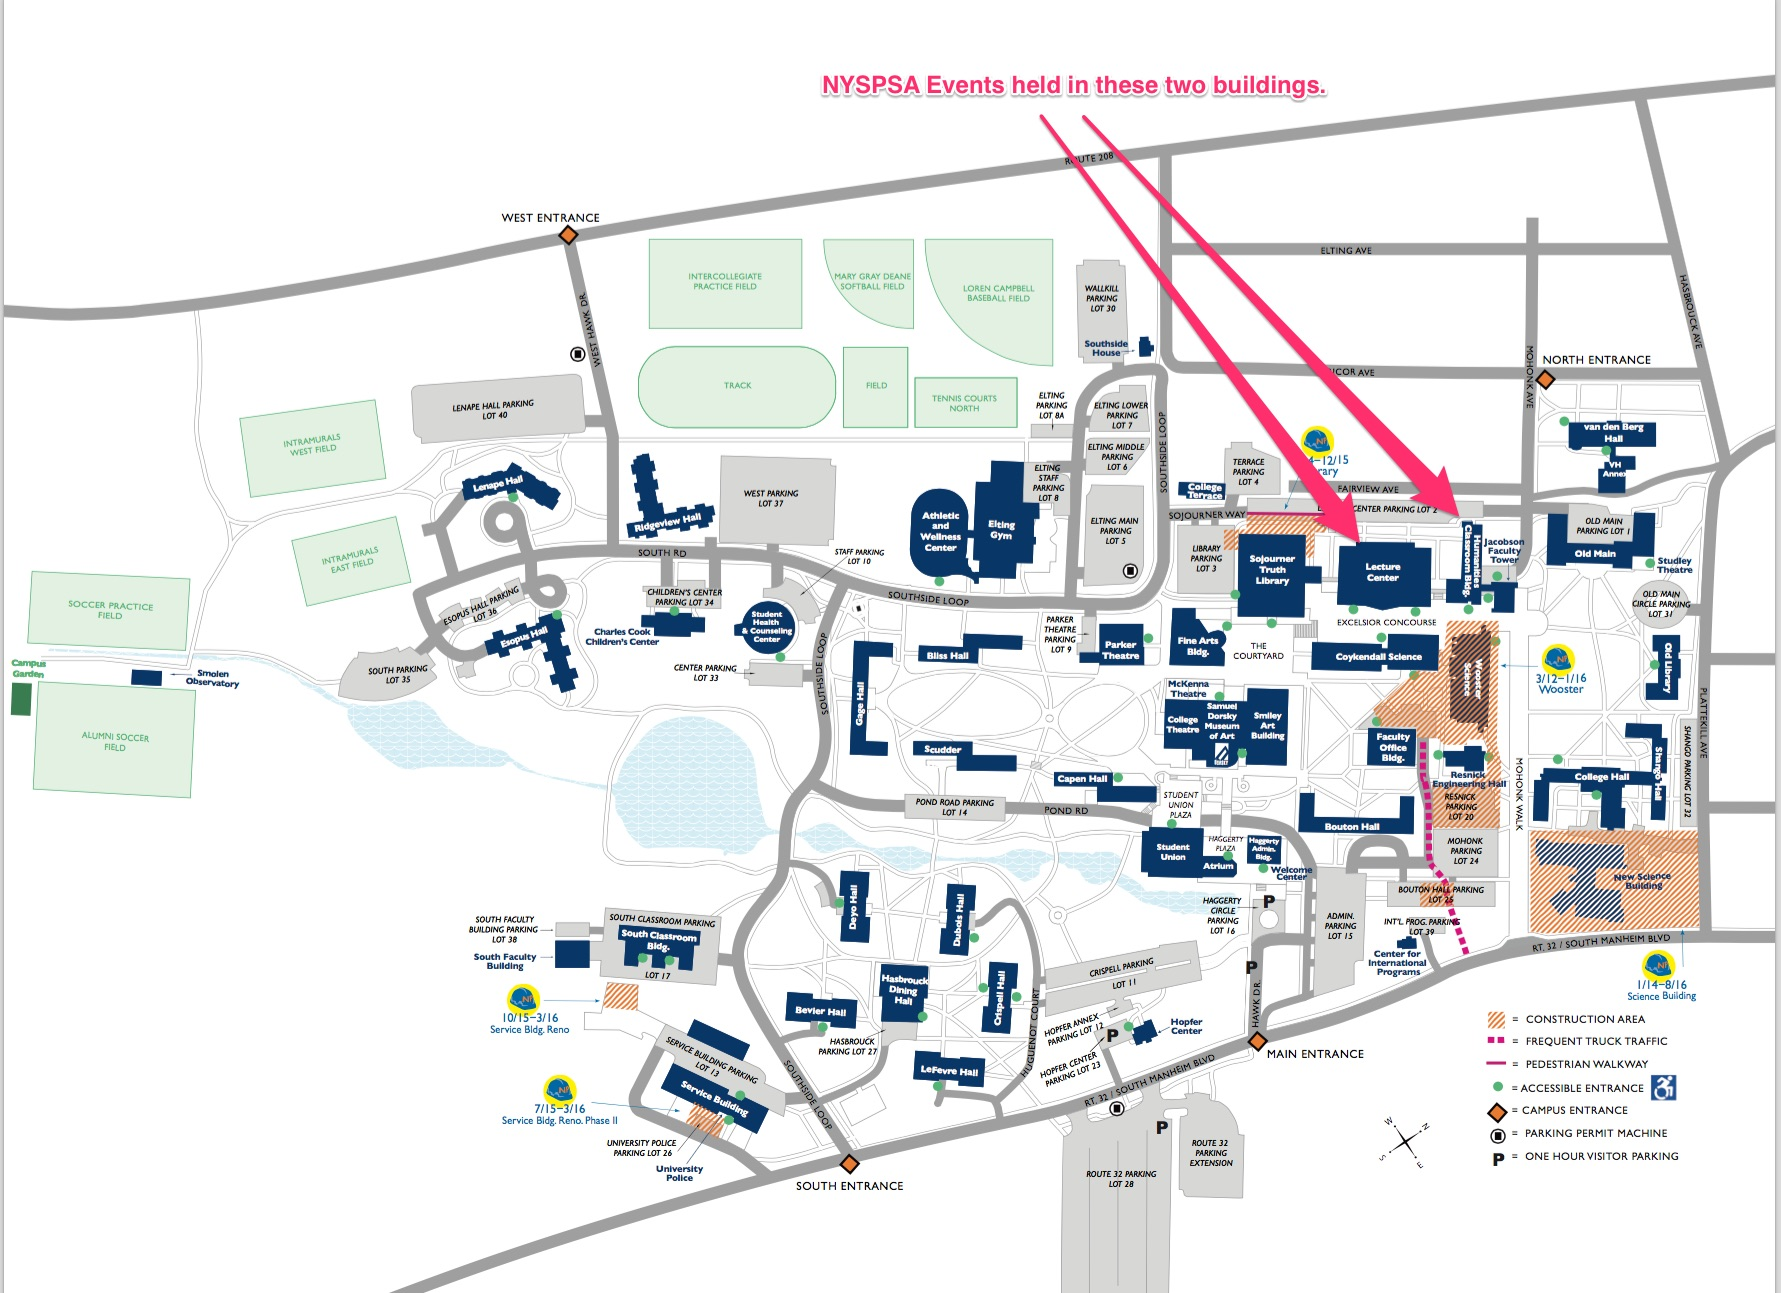 Suny New Paltz Campus Map SUNY New Paltz Campus Map   NYSPSA Suny New Paltz Campus Map